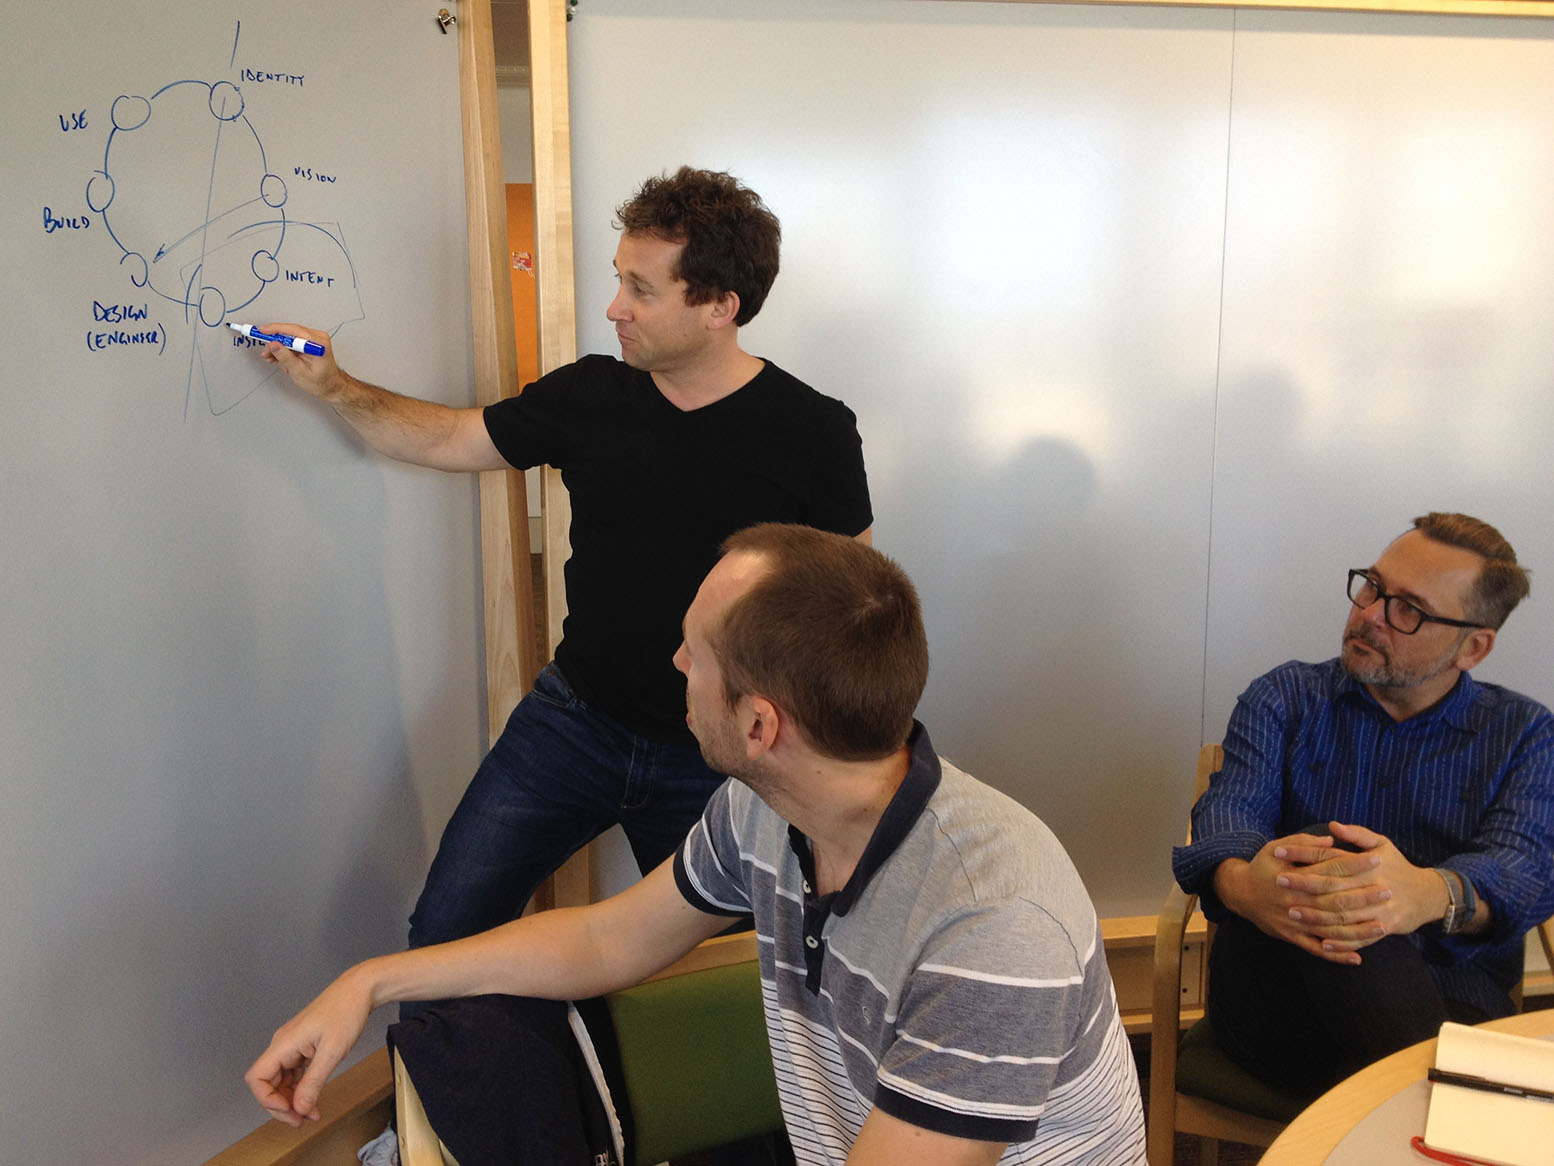 Lawrence Goldstone, Partner at The Difference, at the whiteboard